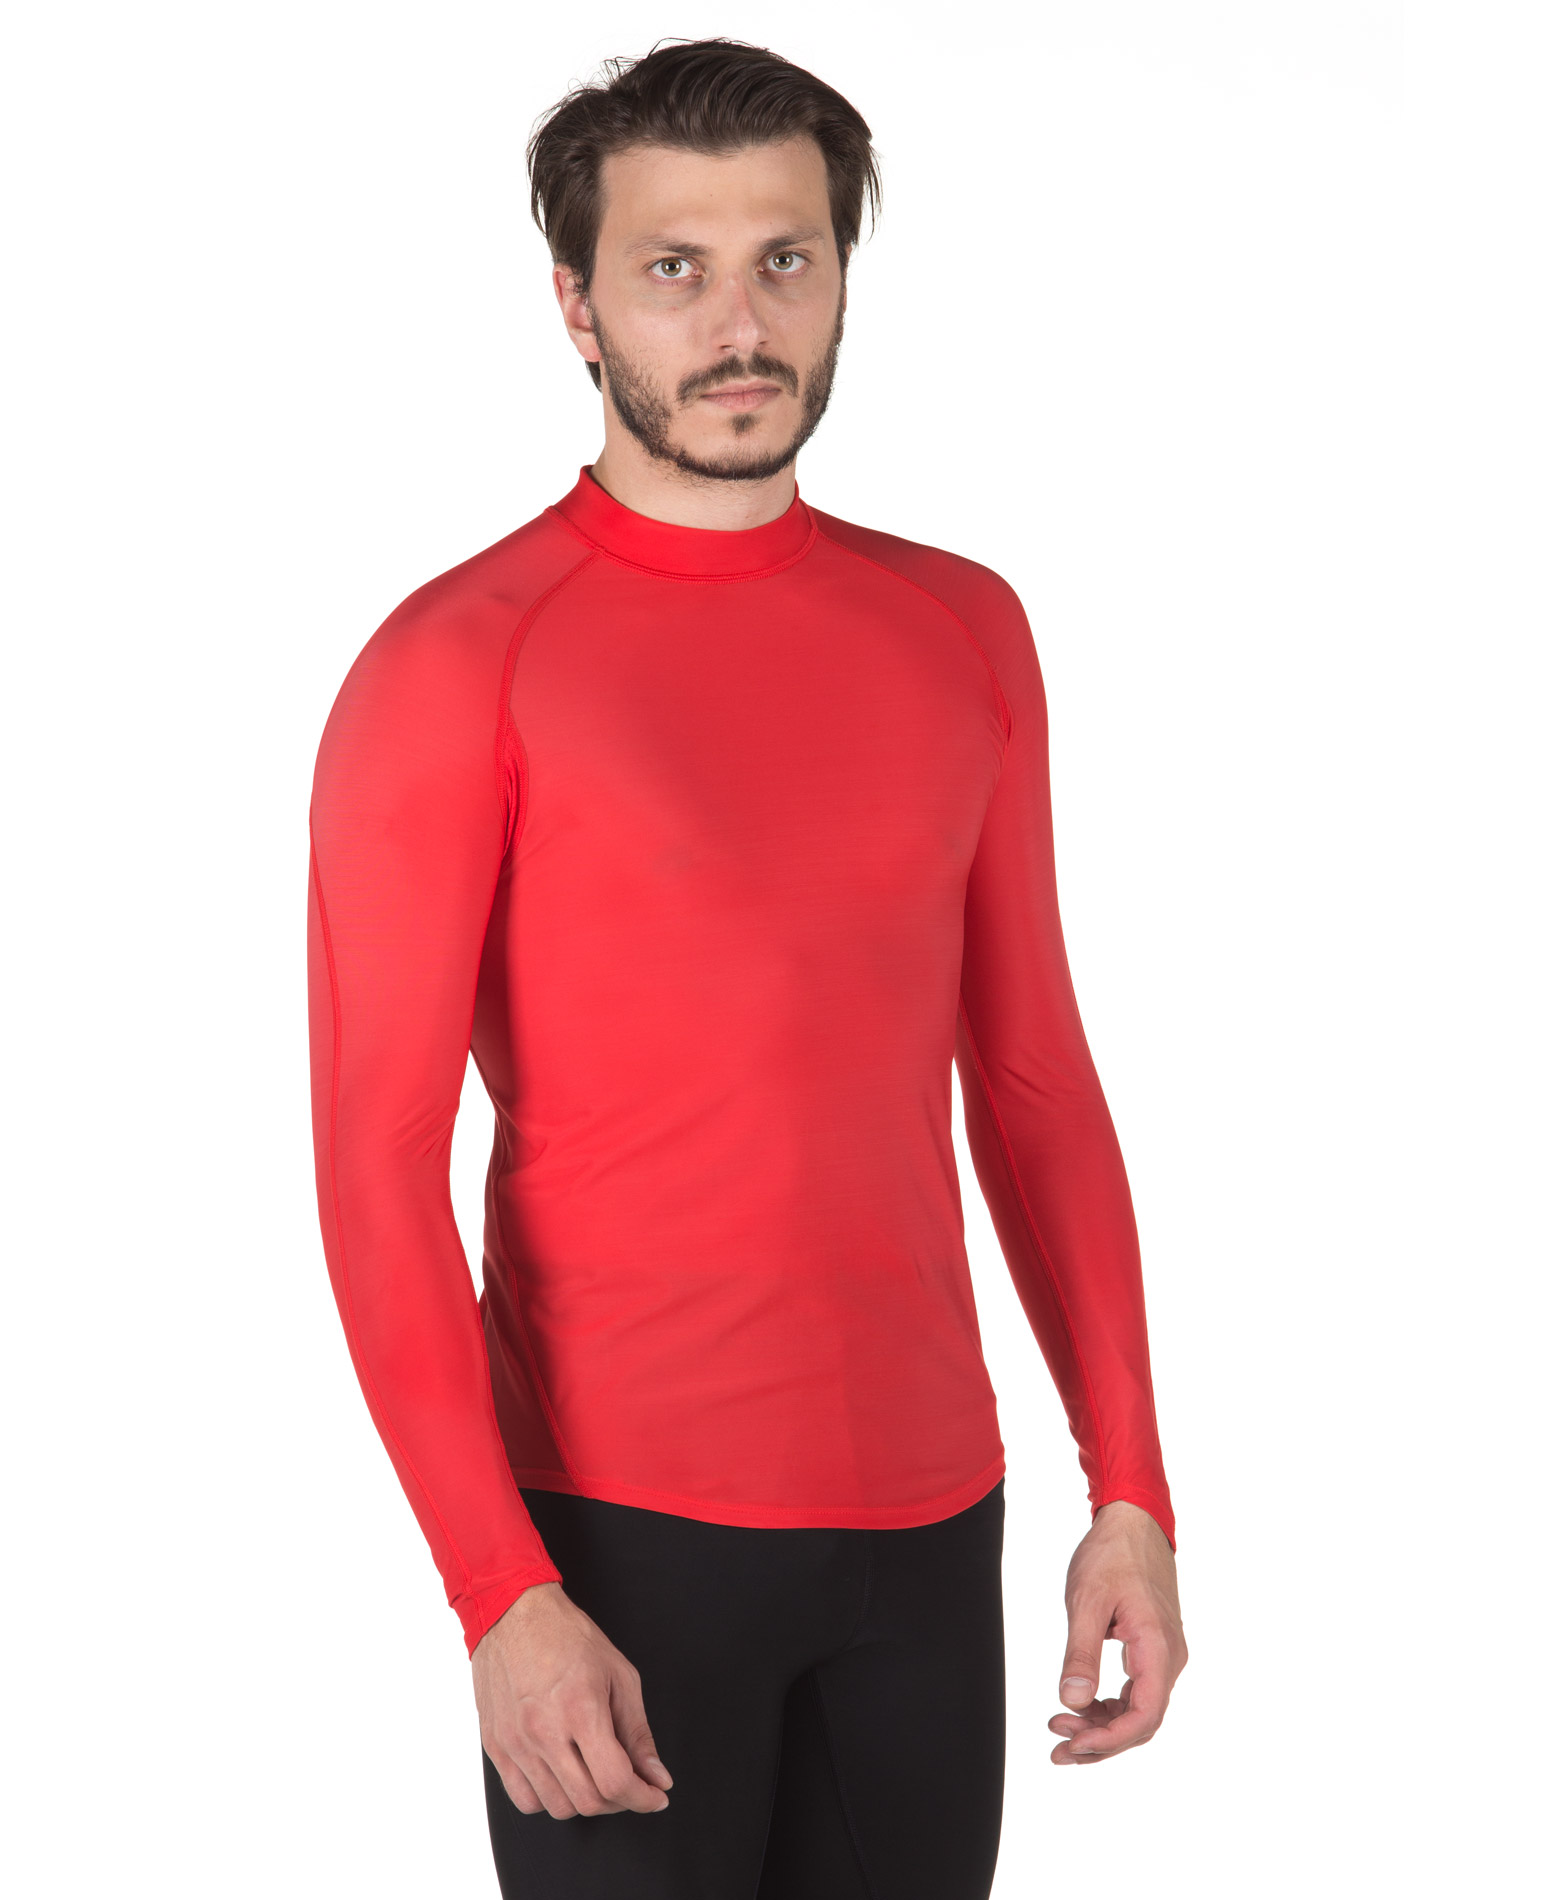 SPALDING MENS RESPONSE LS BASE LAYER 0SB002-40 Κόκκινο